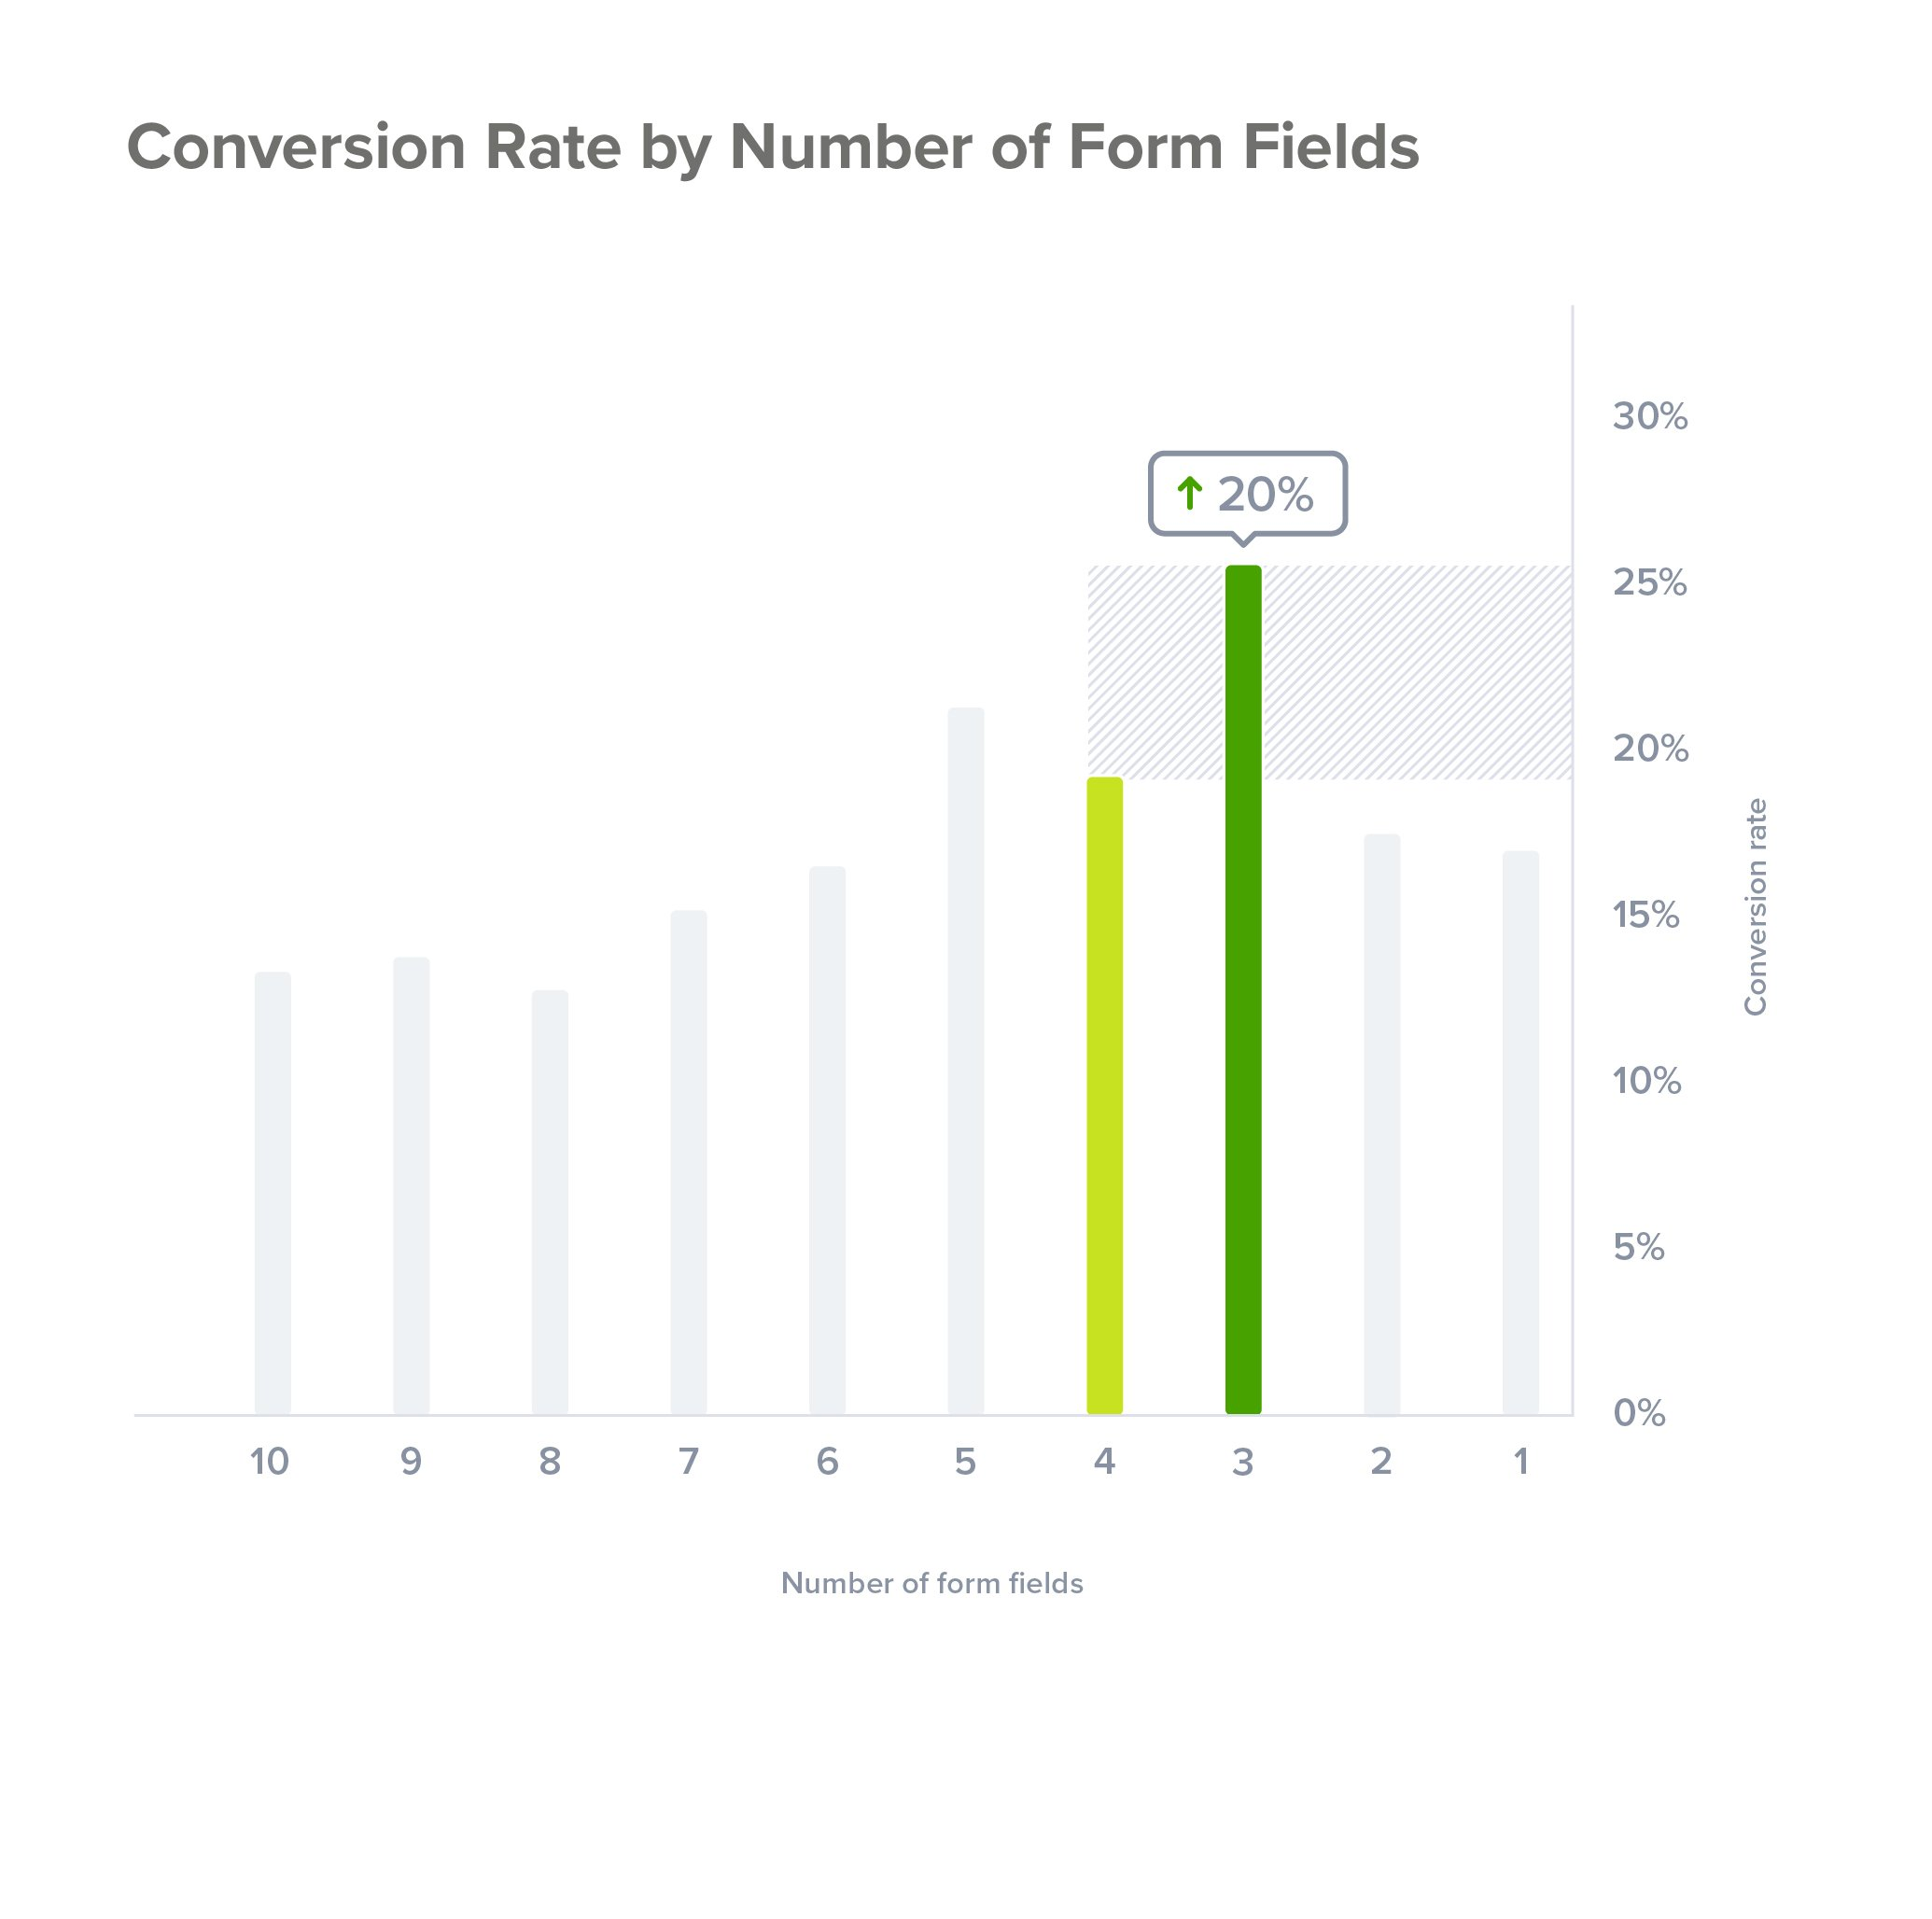 Conversion rates by number of form fields